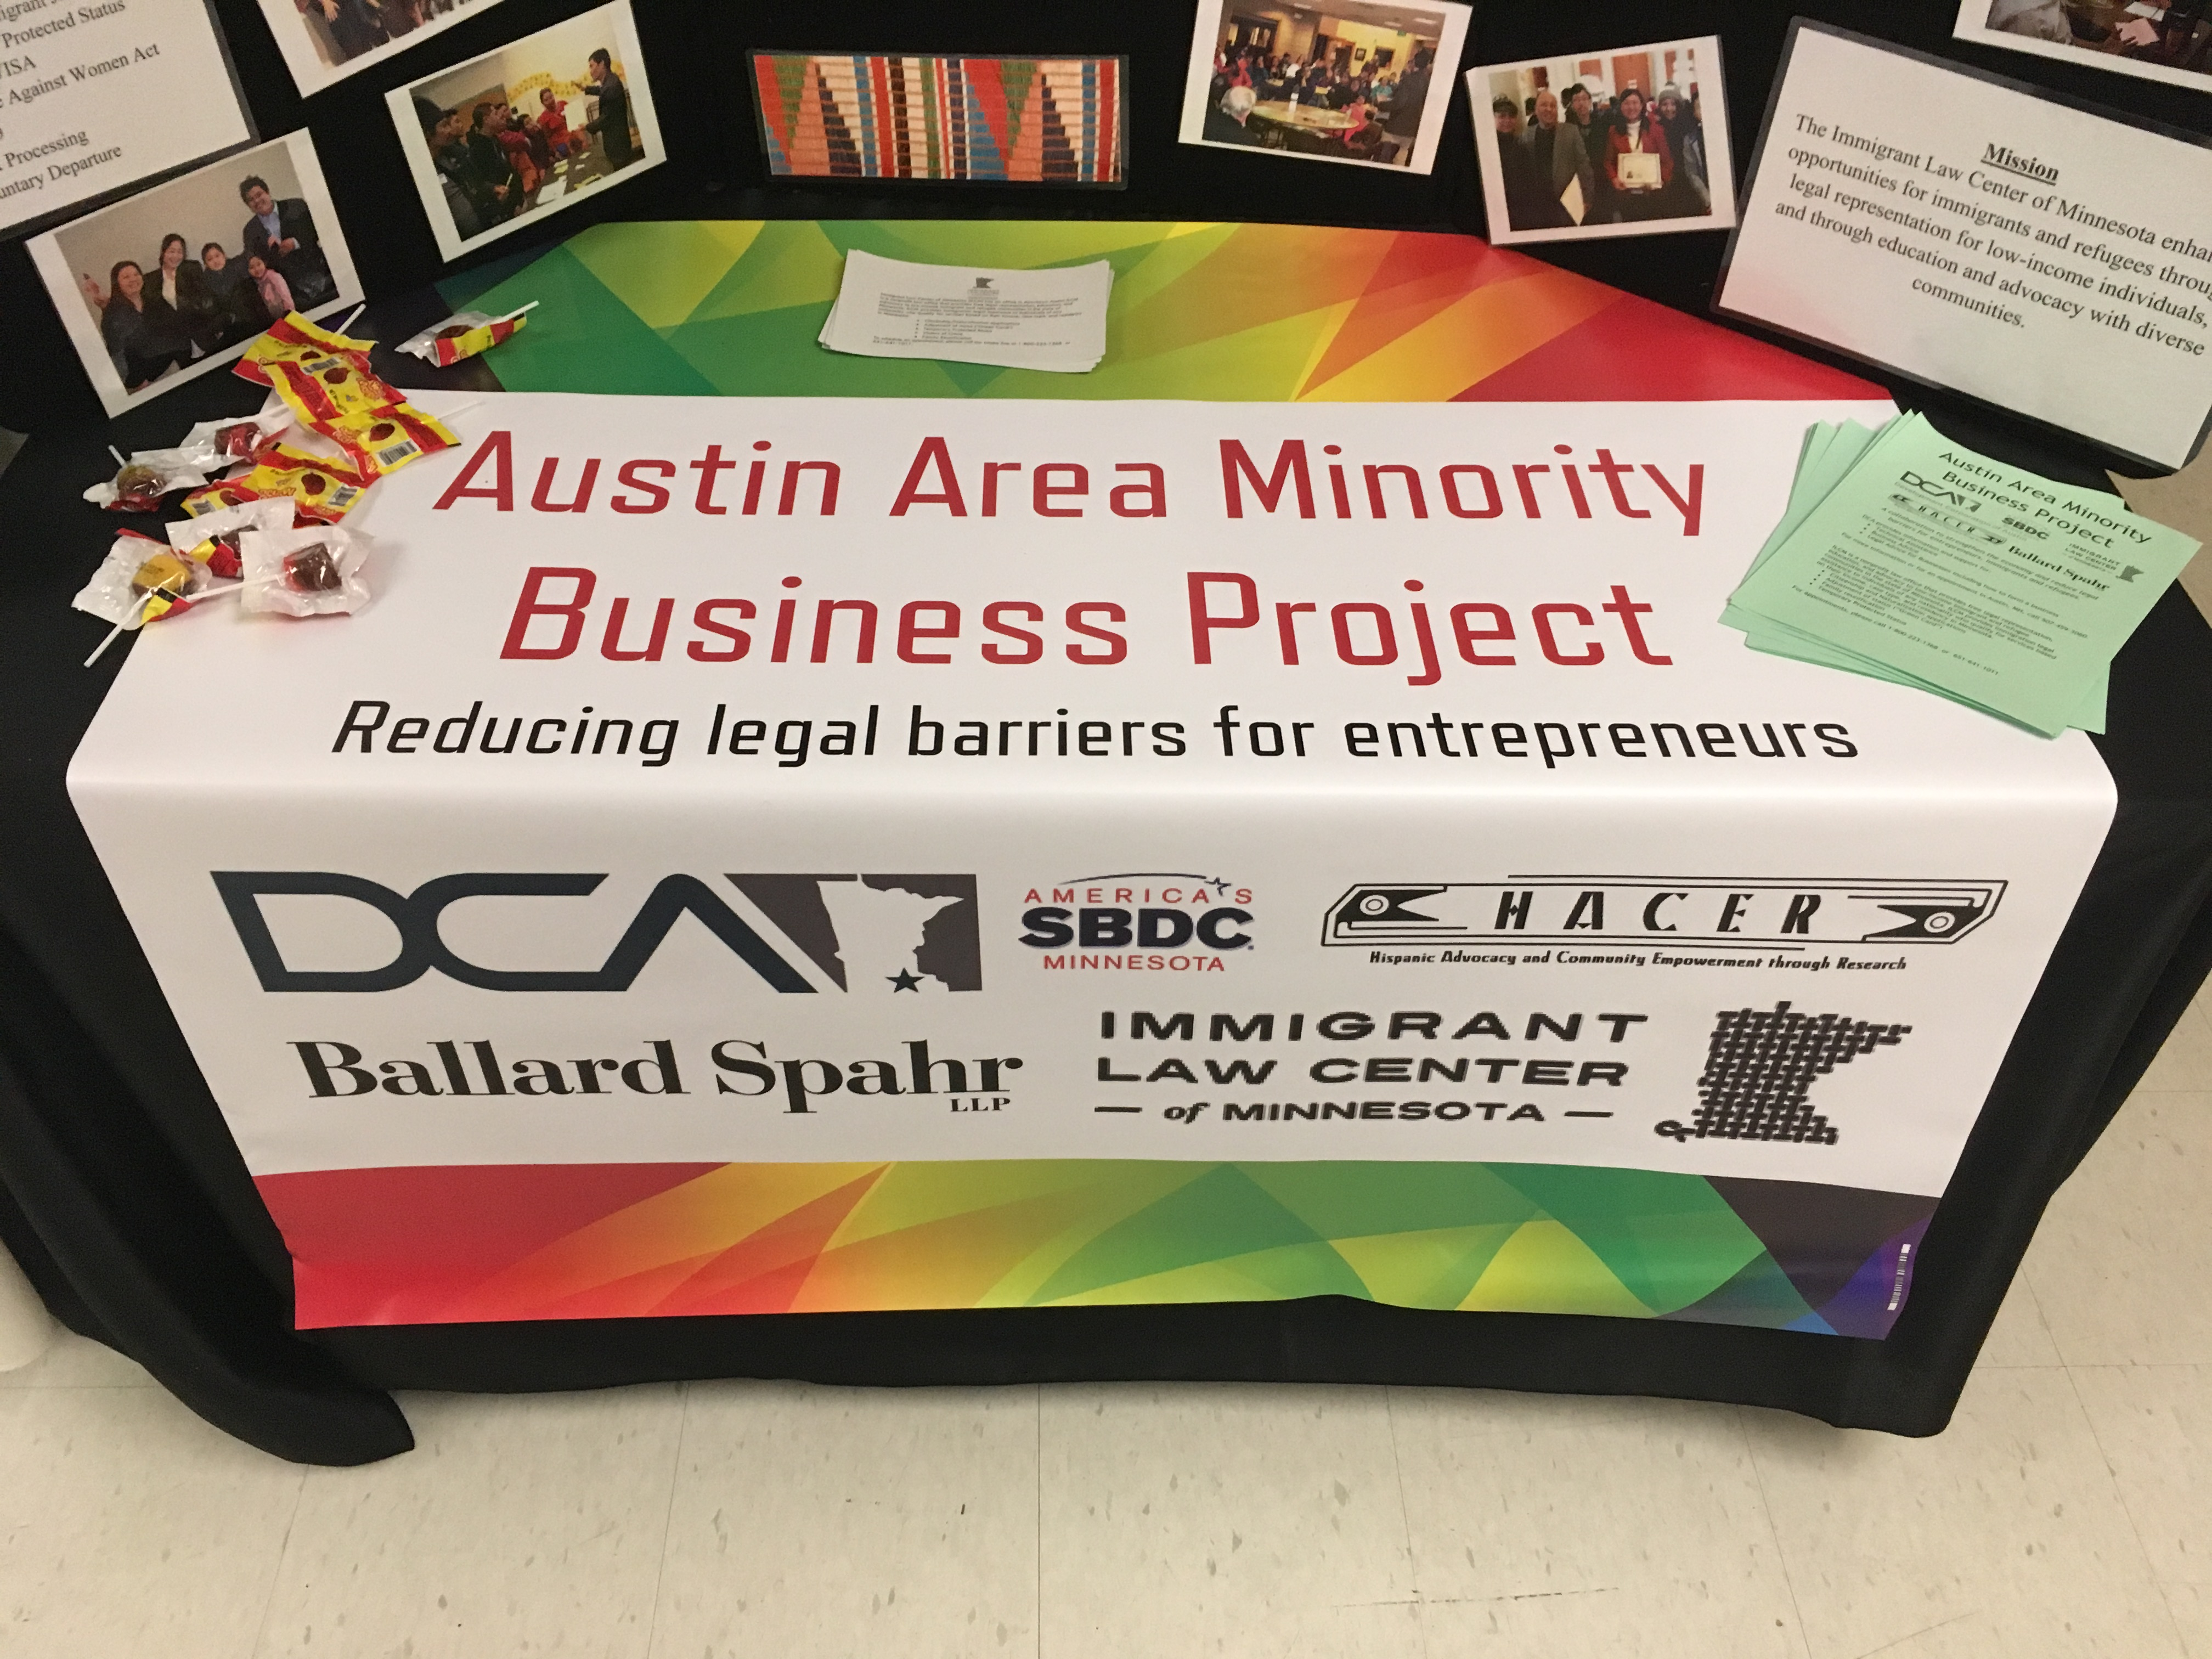 austin area minority business project immigrant law center of